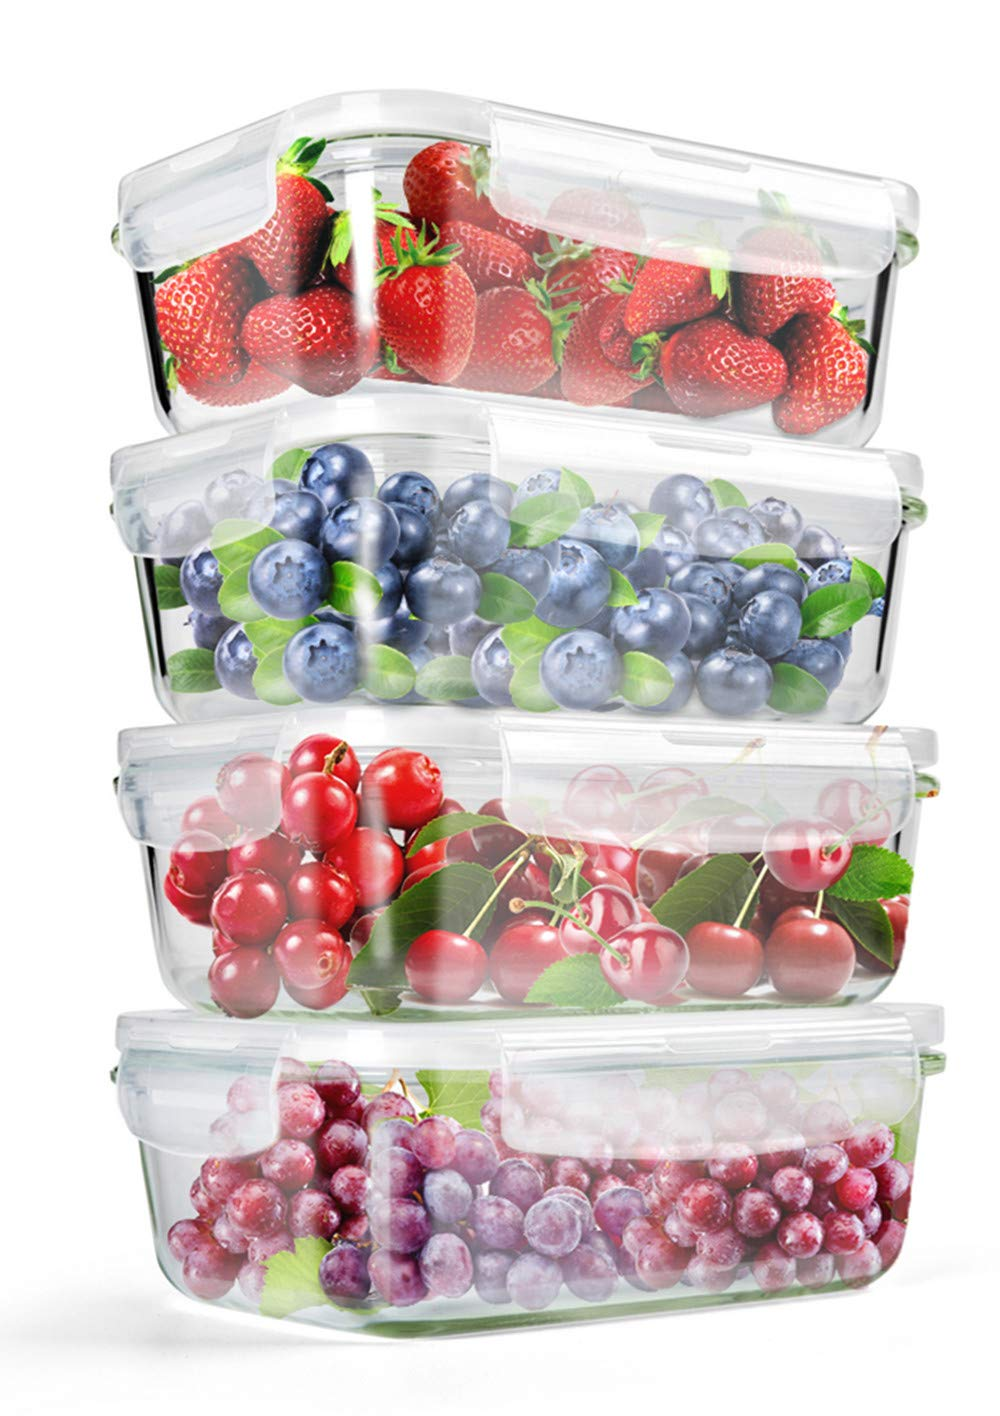 [4-Pack] 29.5 OZ Glass Food Storage Containers - BPA Free Glass Lunch Containers with Lids-Reusable Kitchen Meal Prep Containers Safe for Microwave, Oven or Freezer